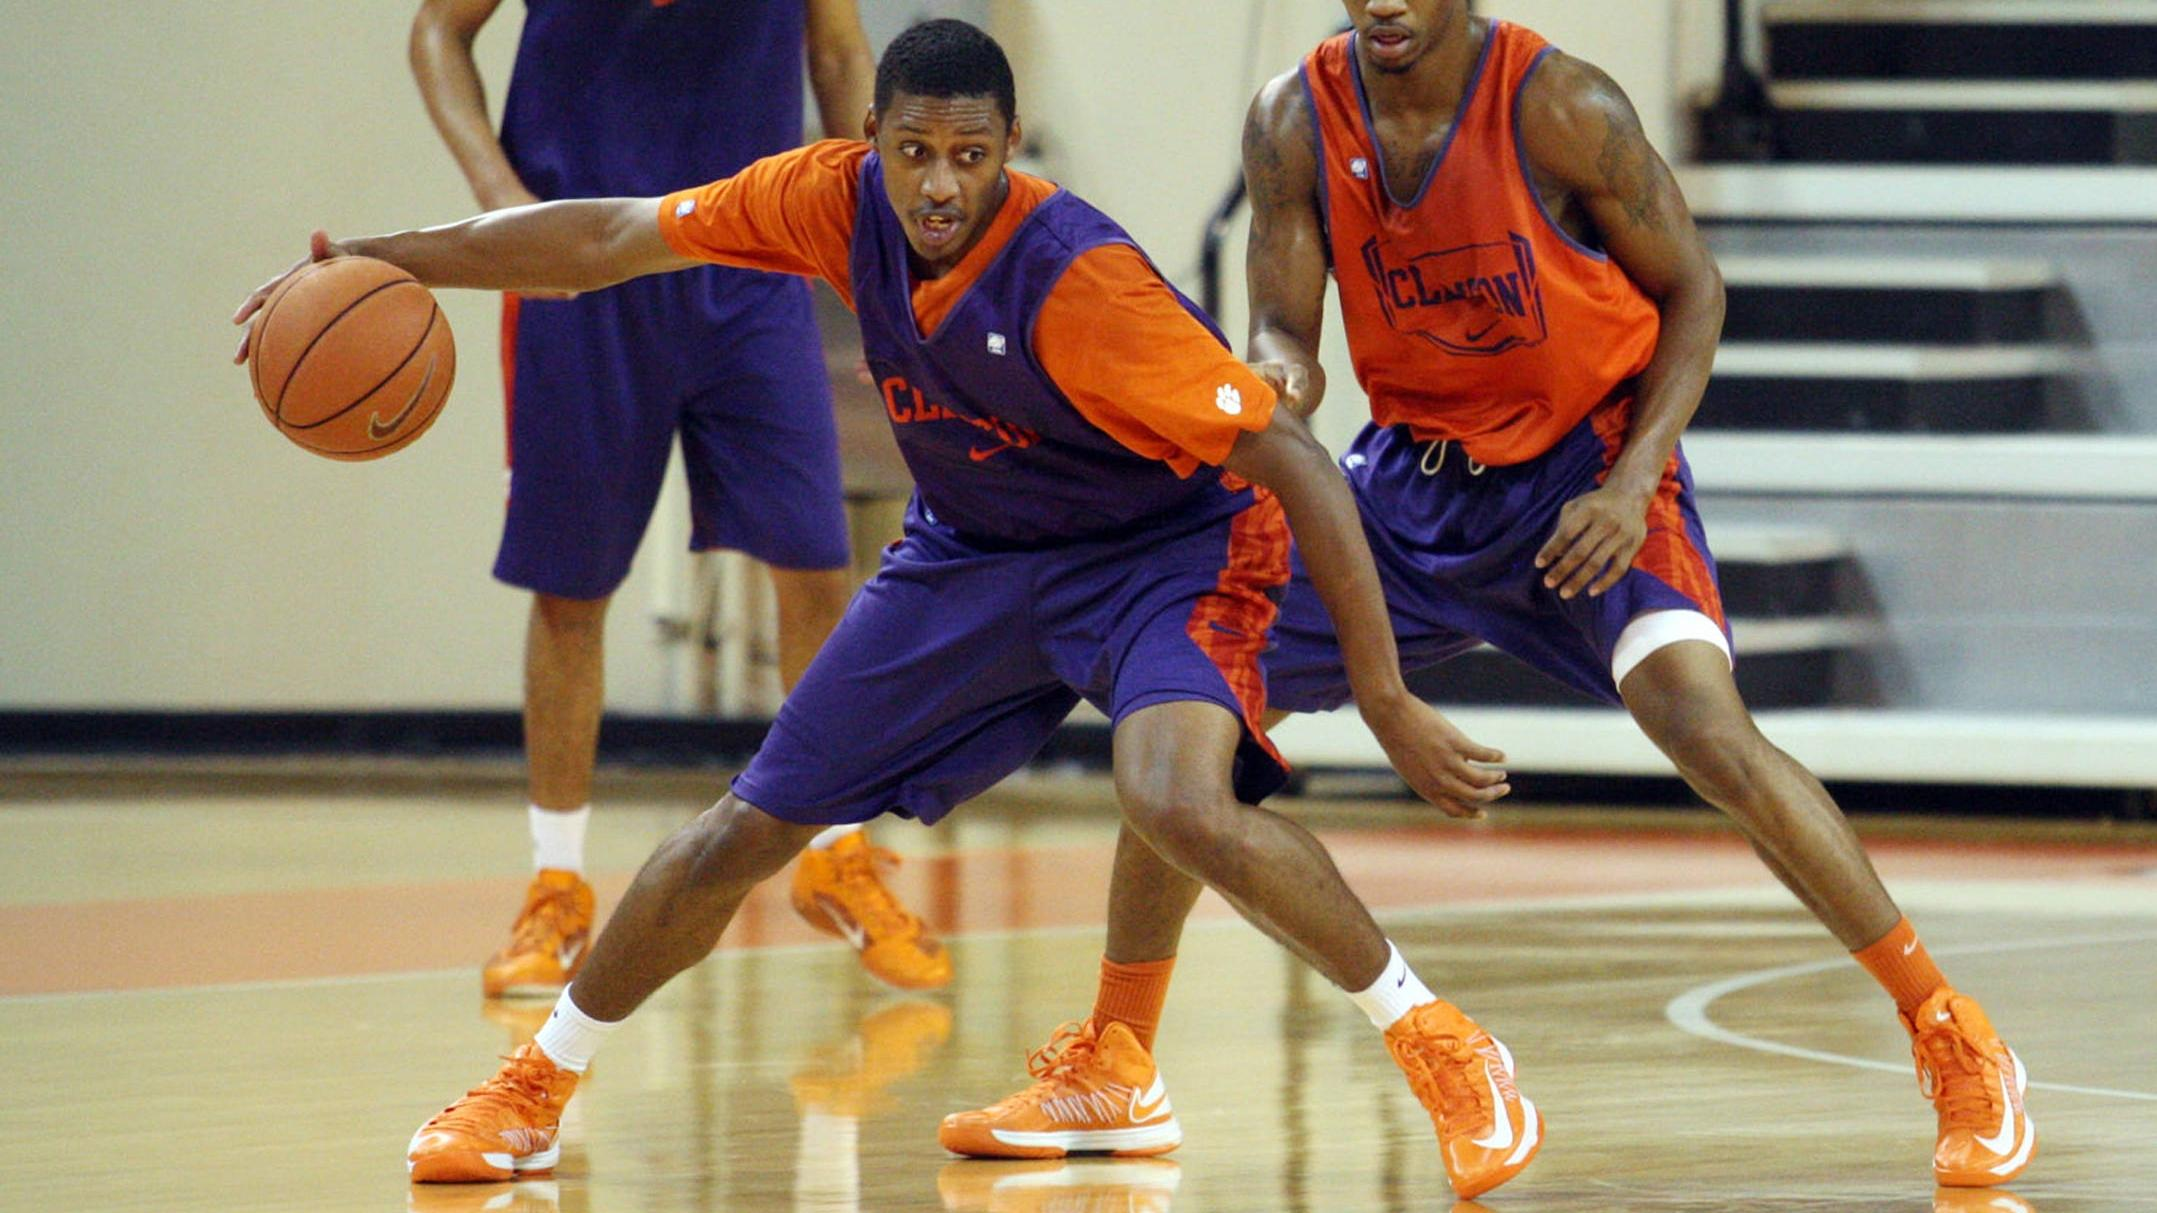 Clemson's Damarcus Harrison Granted Immediate Eligibility for 2012-13